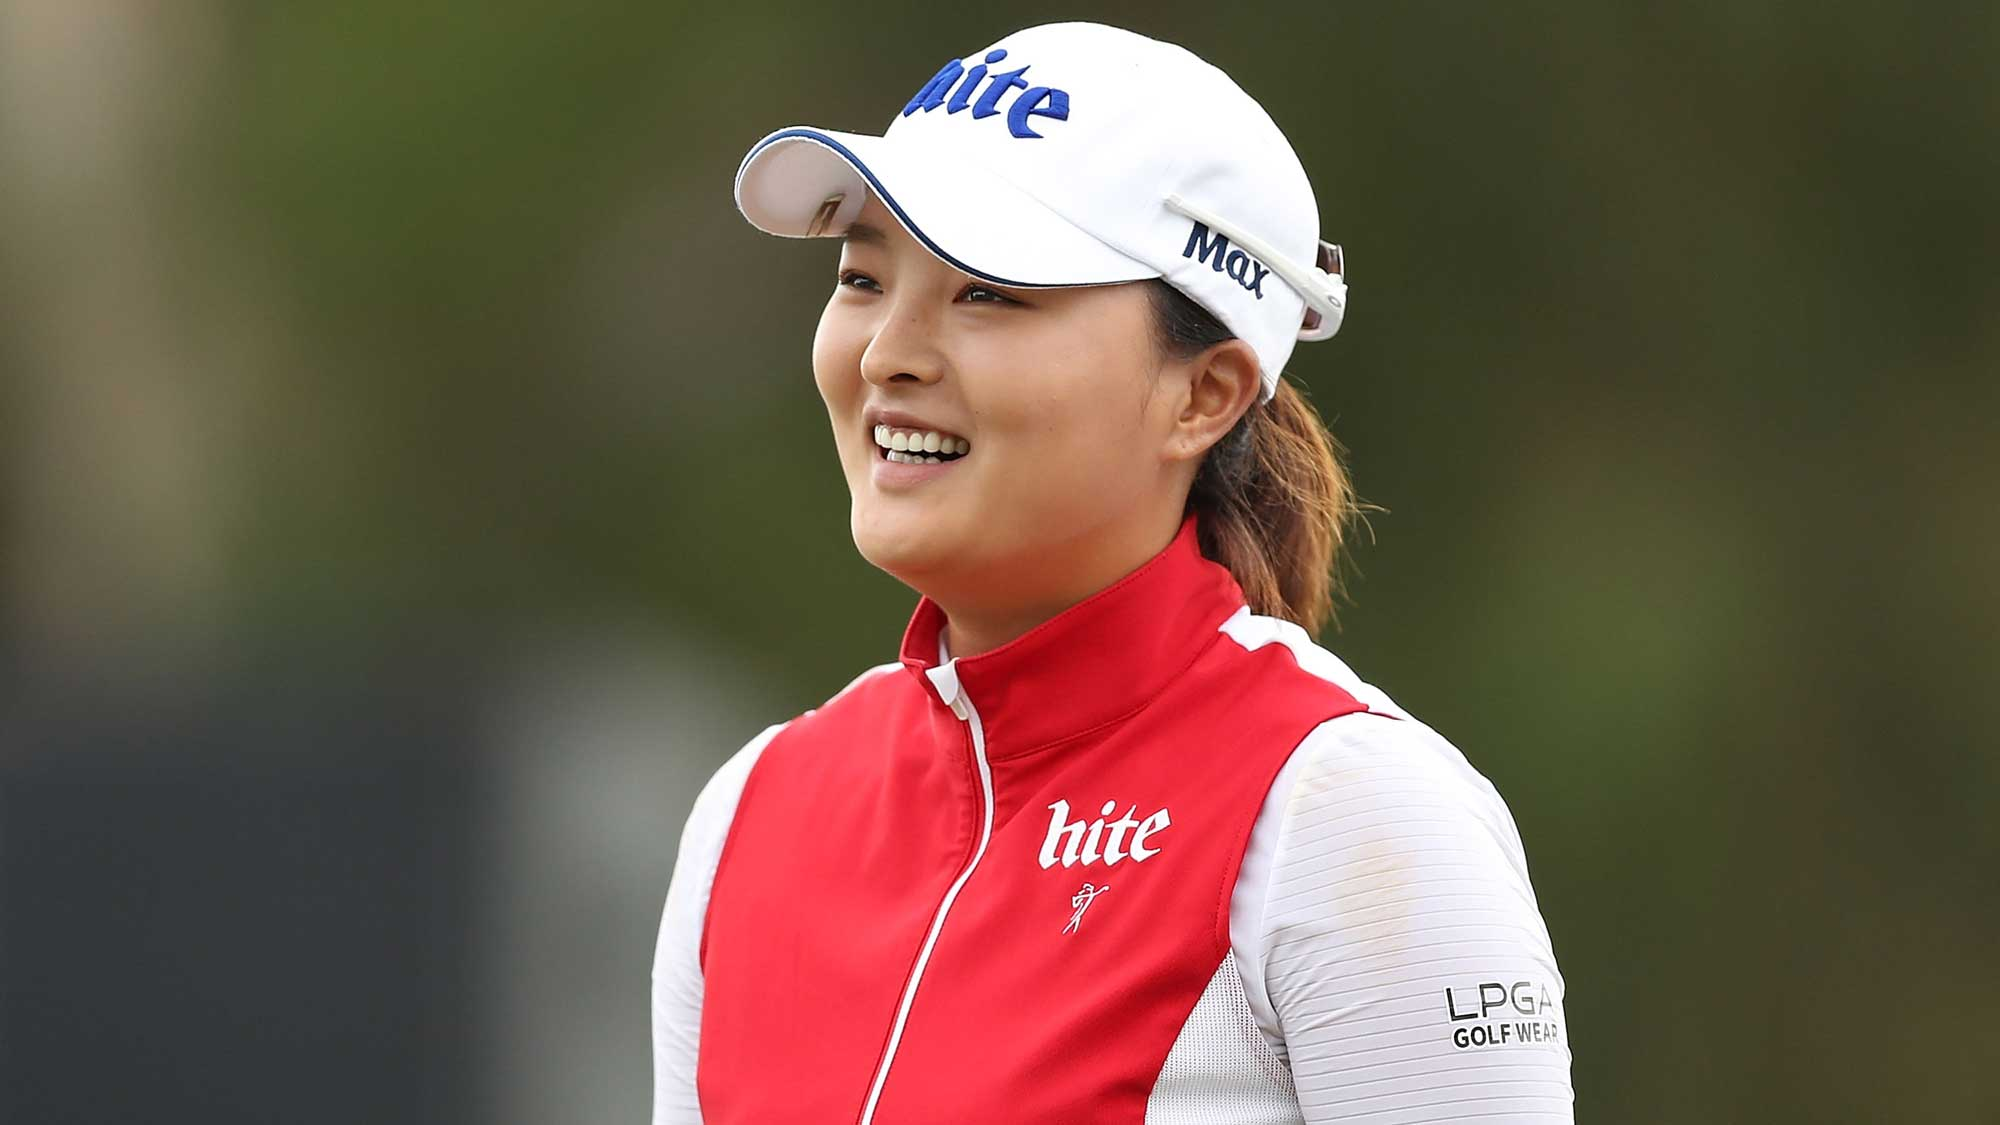 Louise Suggs 11 LPGA majors Louise Suggs 11 LPGA majors new picture